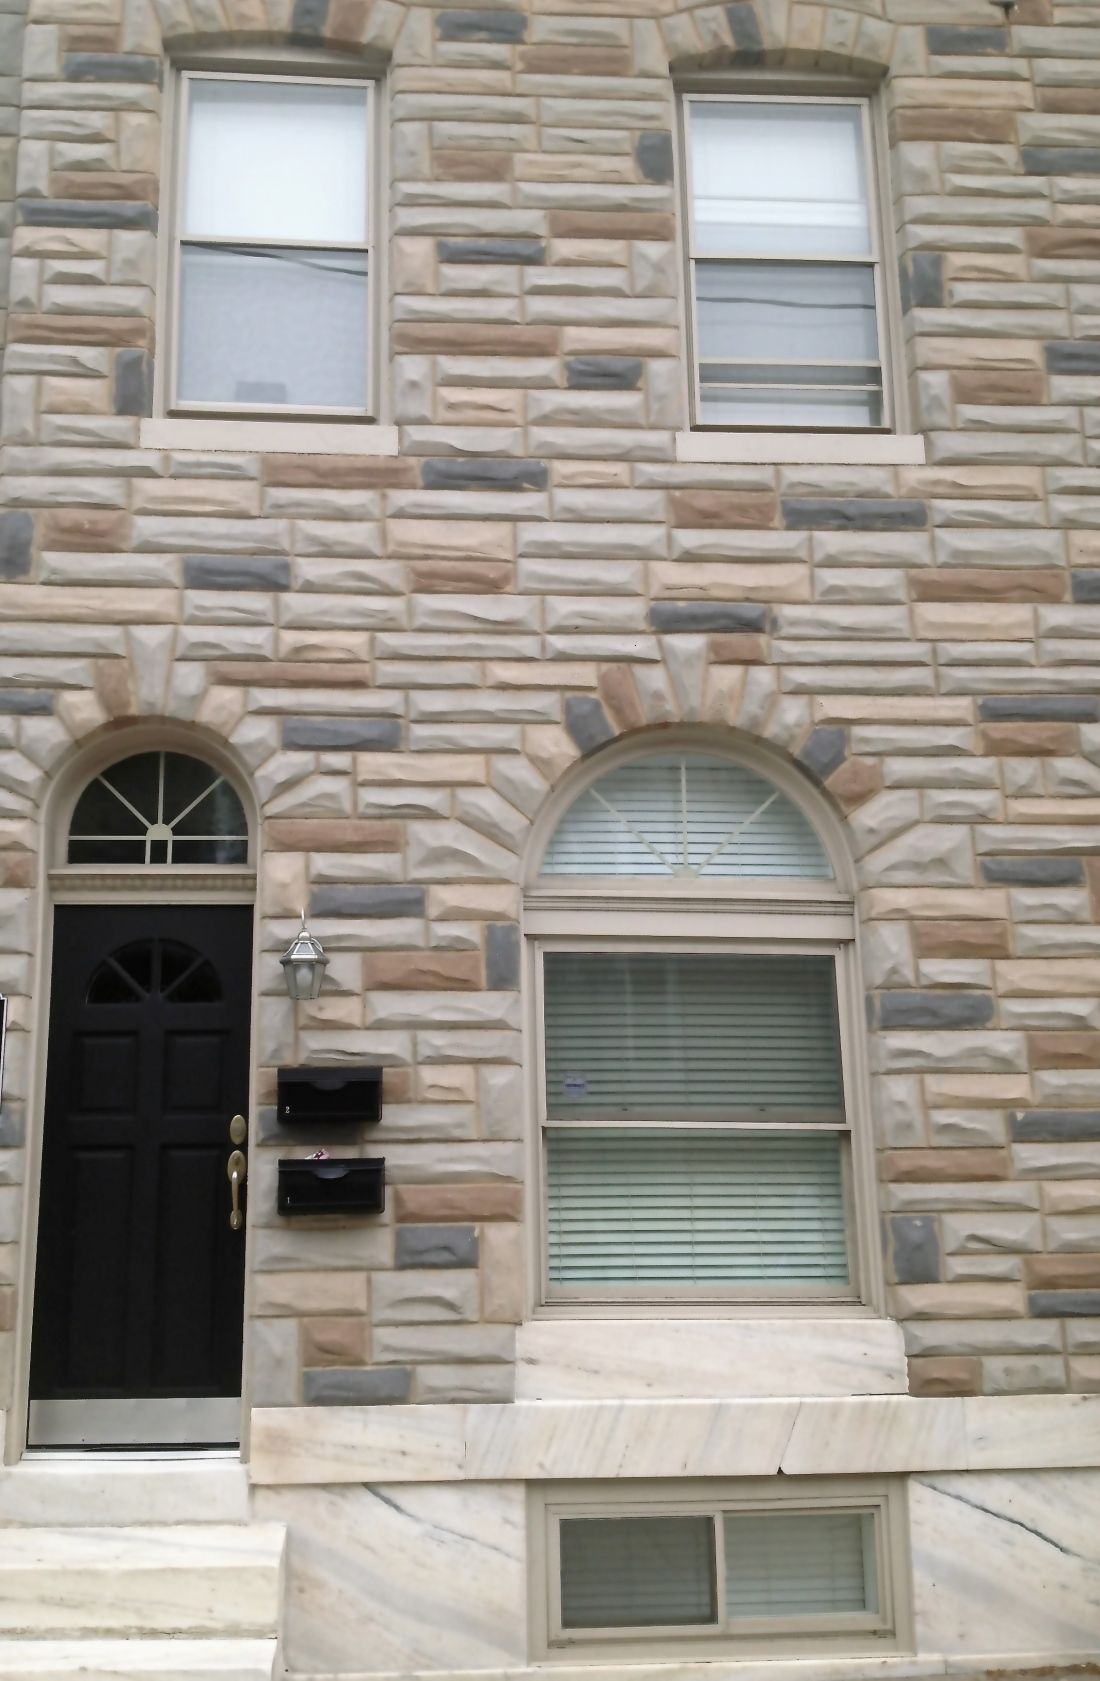 Rowhouse with formstone siding is classic Baltimore...